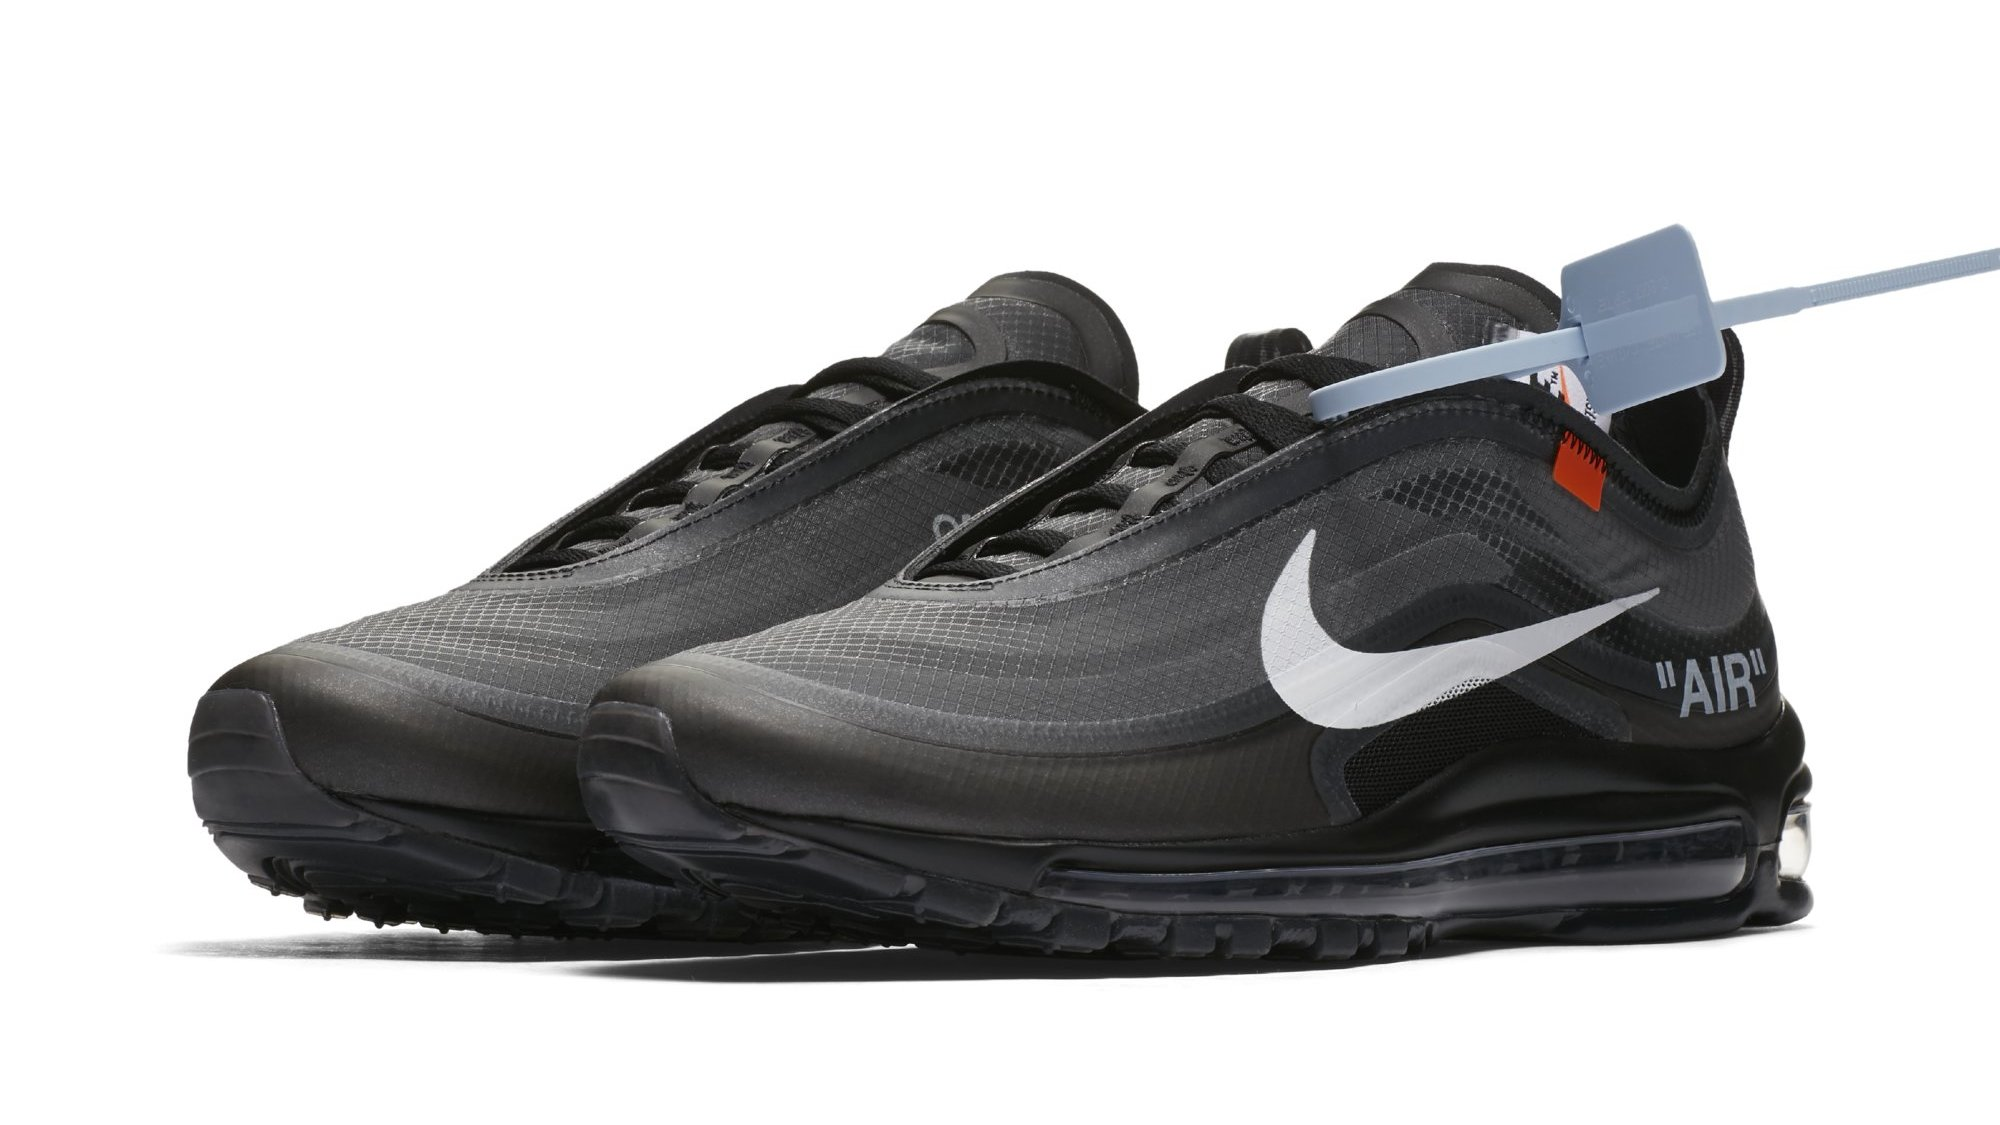 great fit new styles cheap price Off-White x Nike Air Max 97 OG Black/Cone/Black/White AJ4585 ...